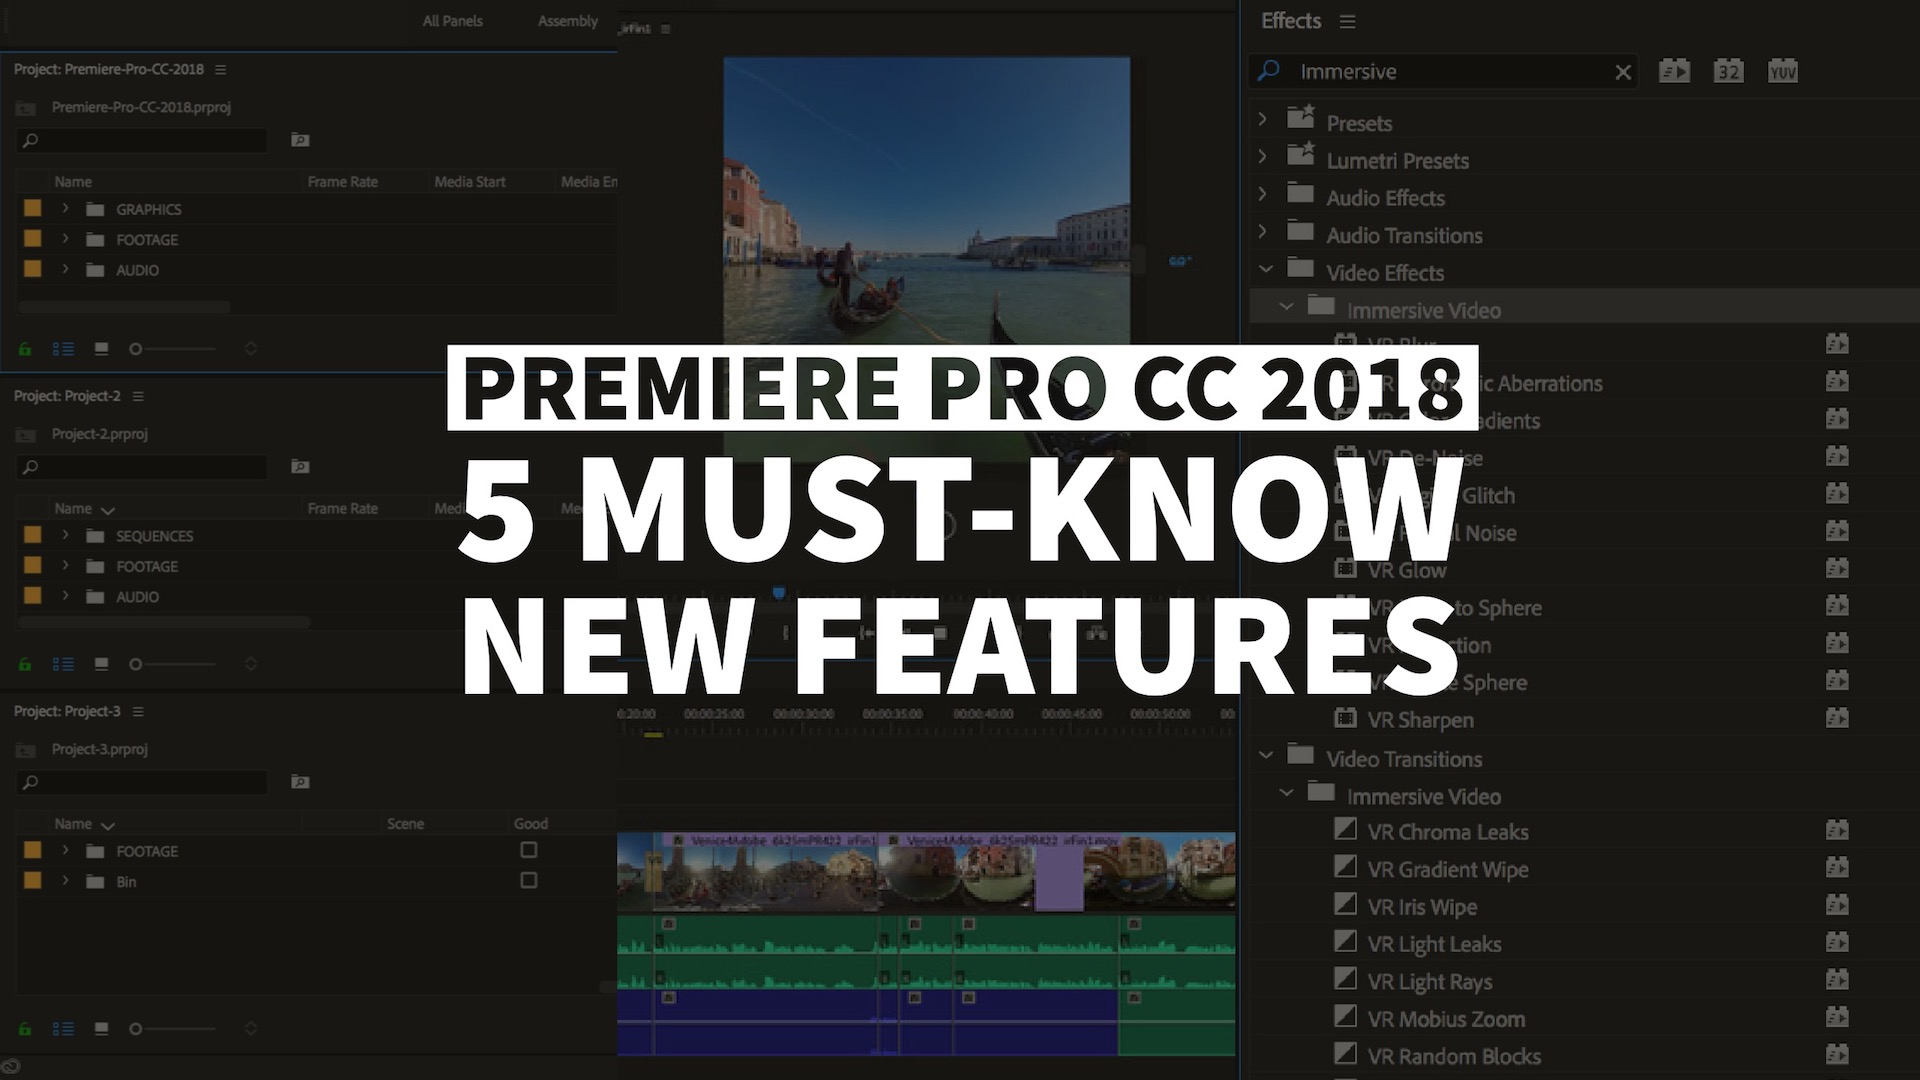 Premiere Pro CC 2018 Preview: 5 Must-Know New Features